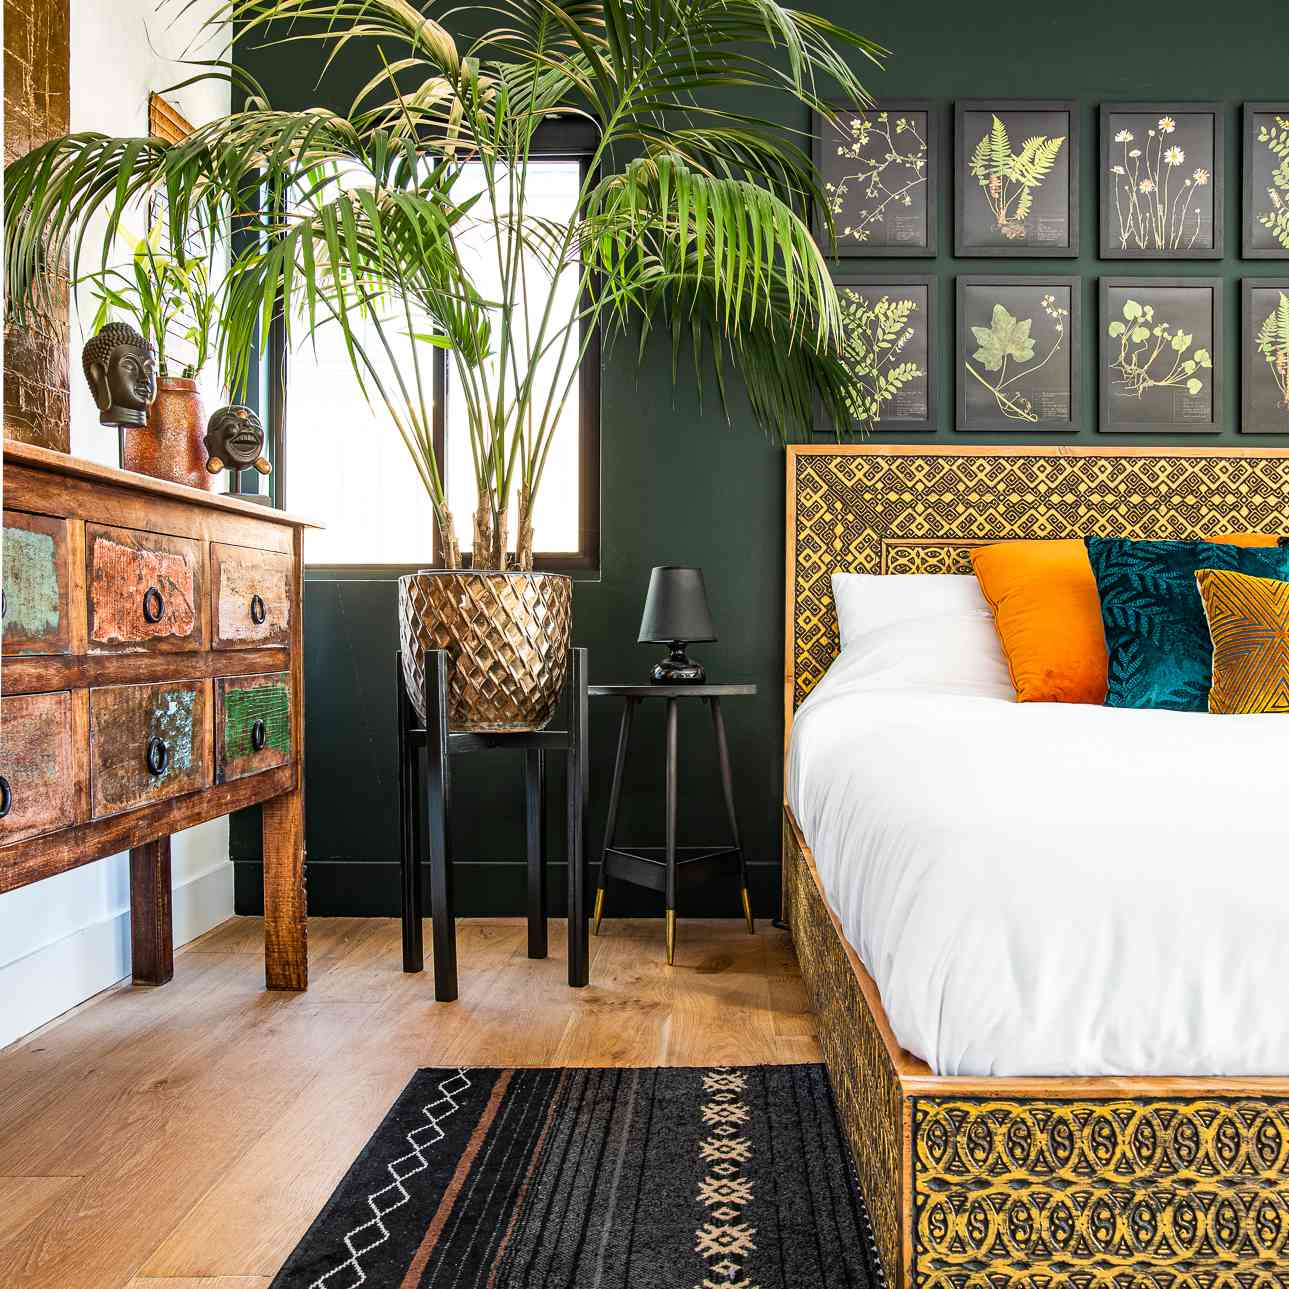 Boho bedroom with large plant